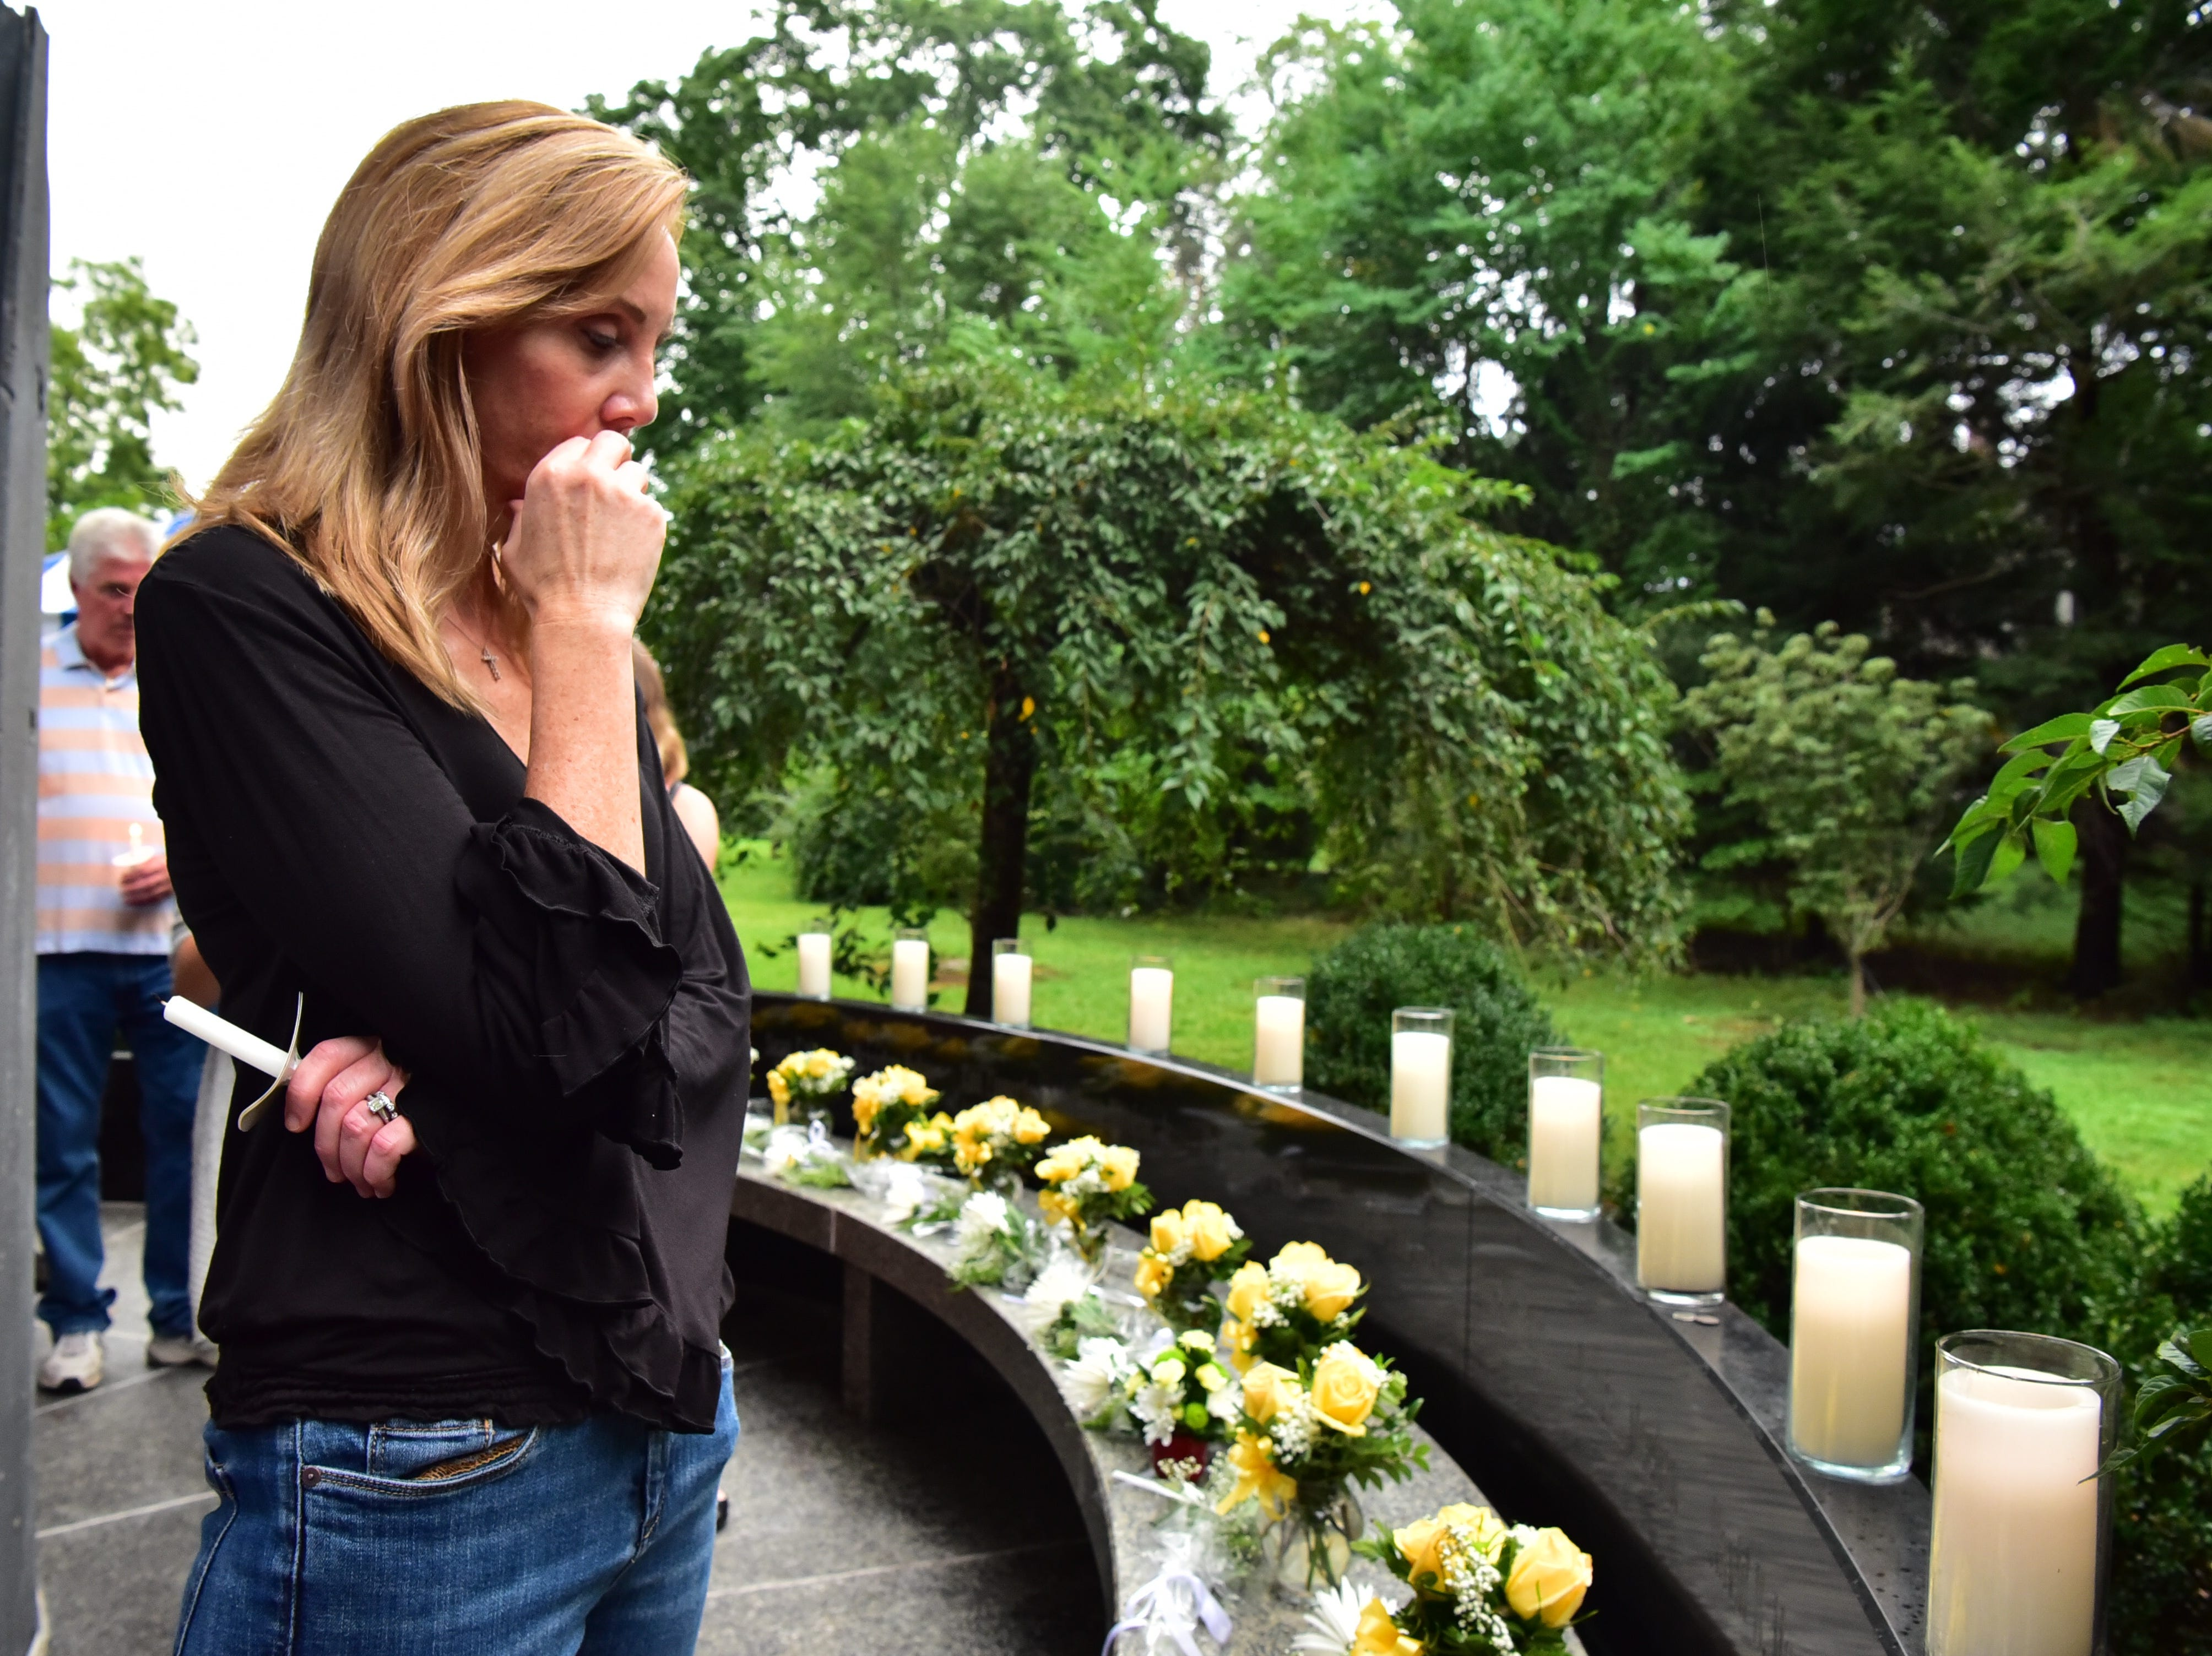 Colleen Golden pays respects to her father Dick Morgan, a 9-11 victim at the memorial in Glen Rock, NJ.